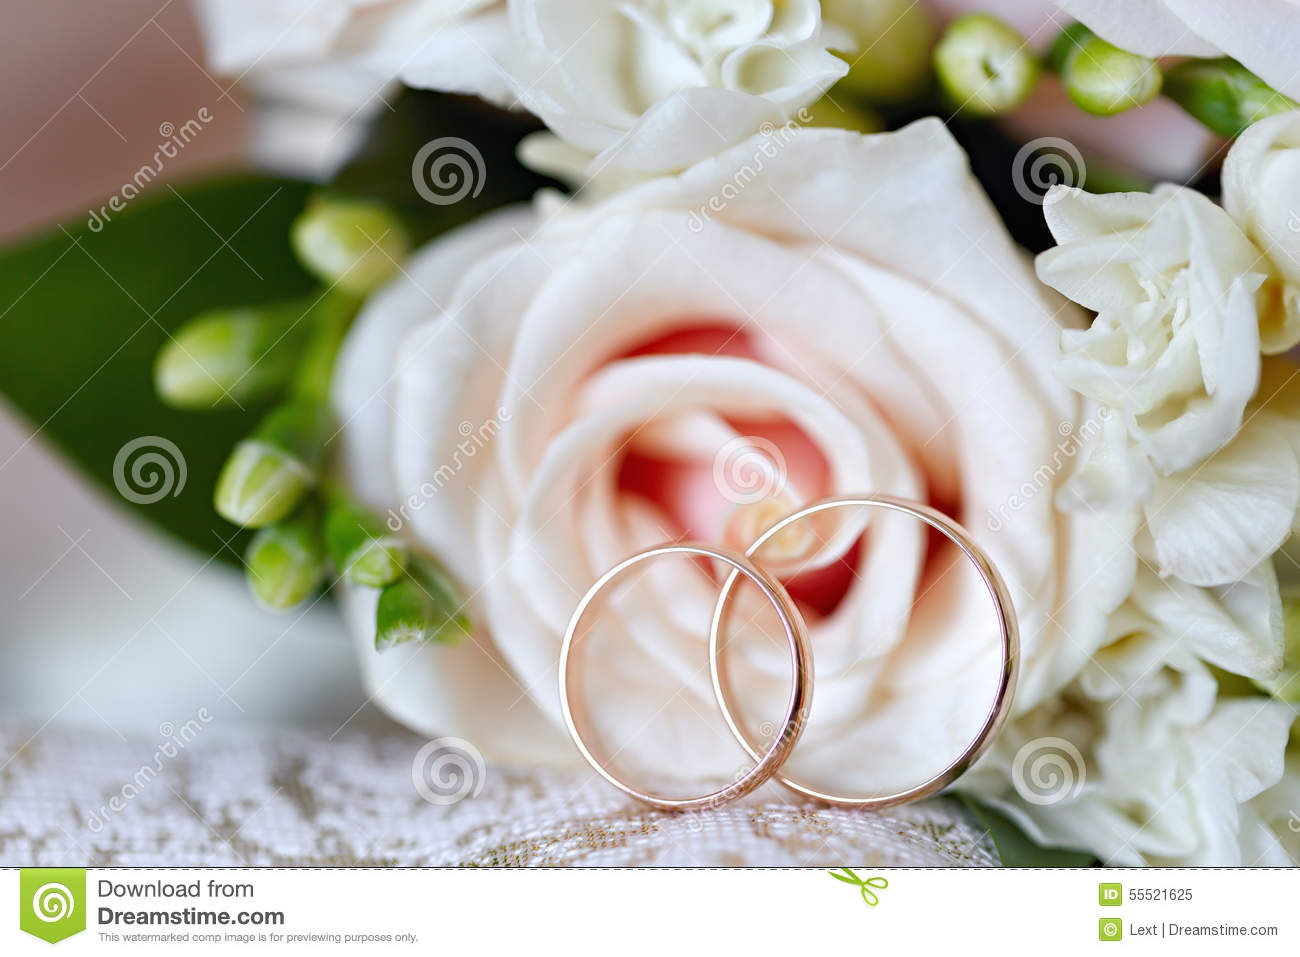 Gold Wedding Rings On Bouquet Of Flowers For The Bride Stock Image ...